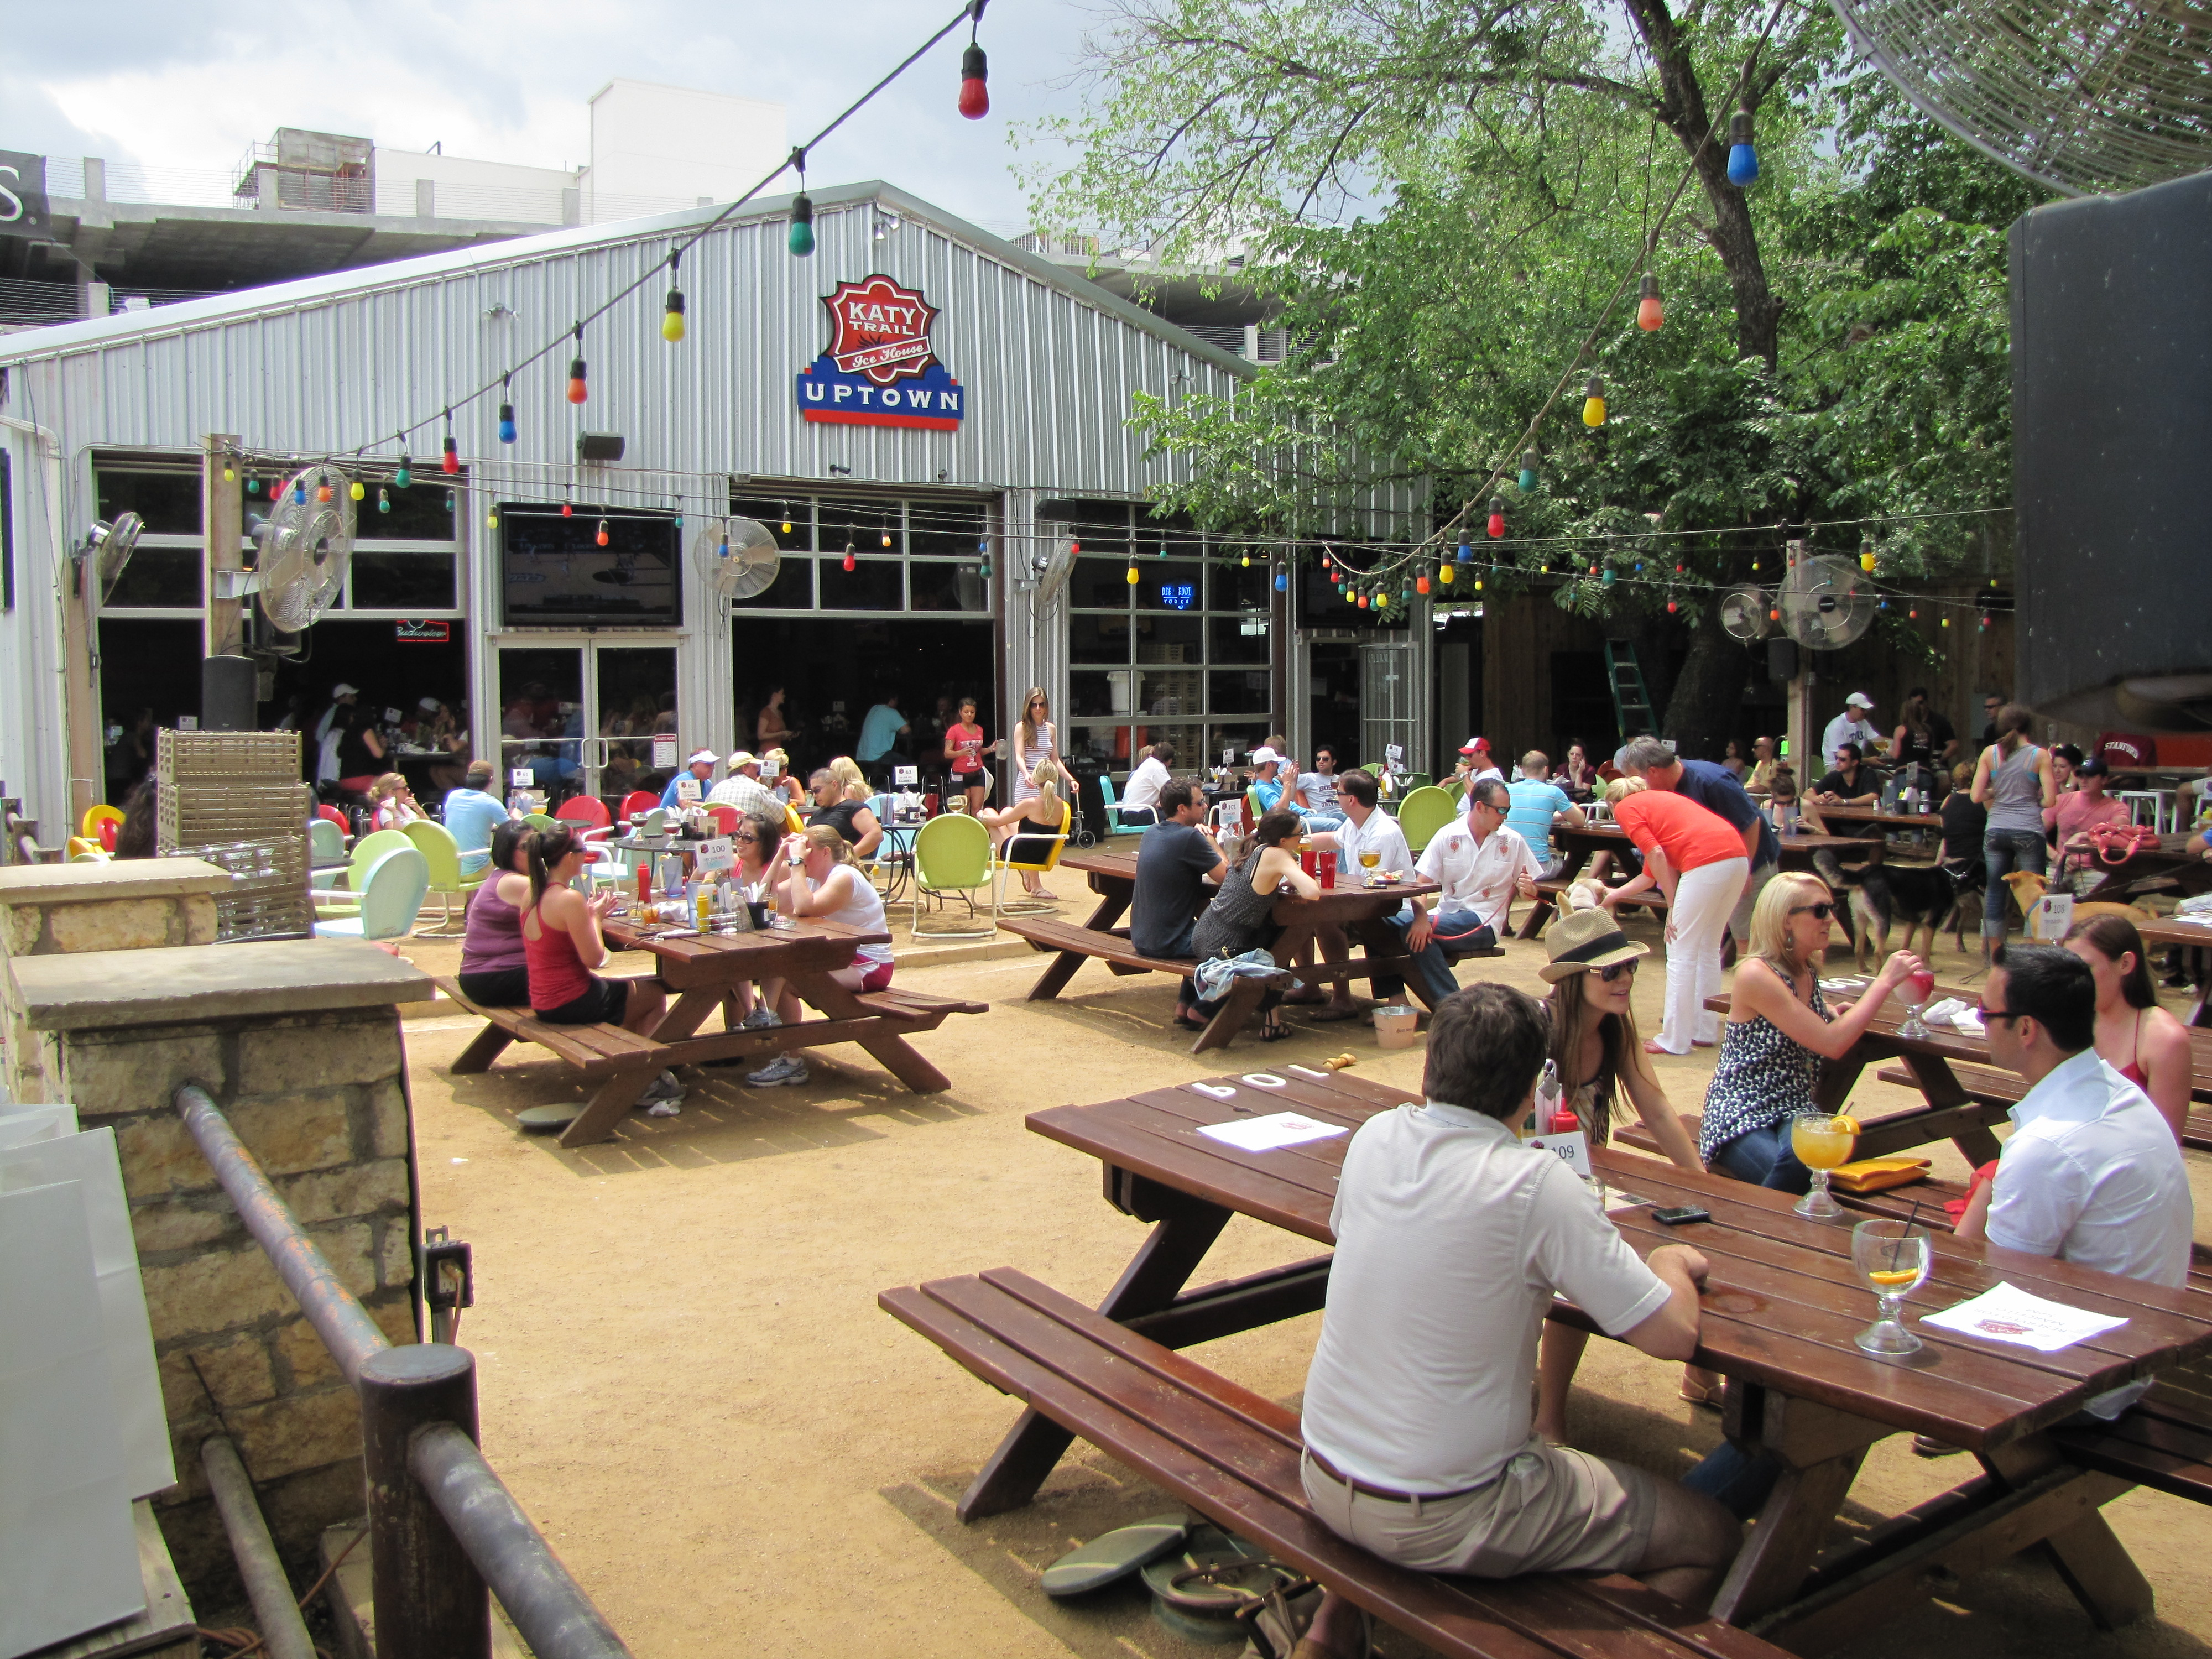 Katy Trail Ice House Has Awesome Barbecue | cravedfw Katy Trail Ice House